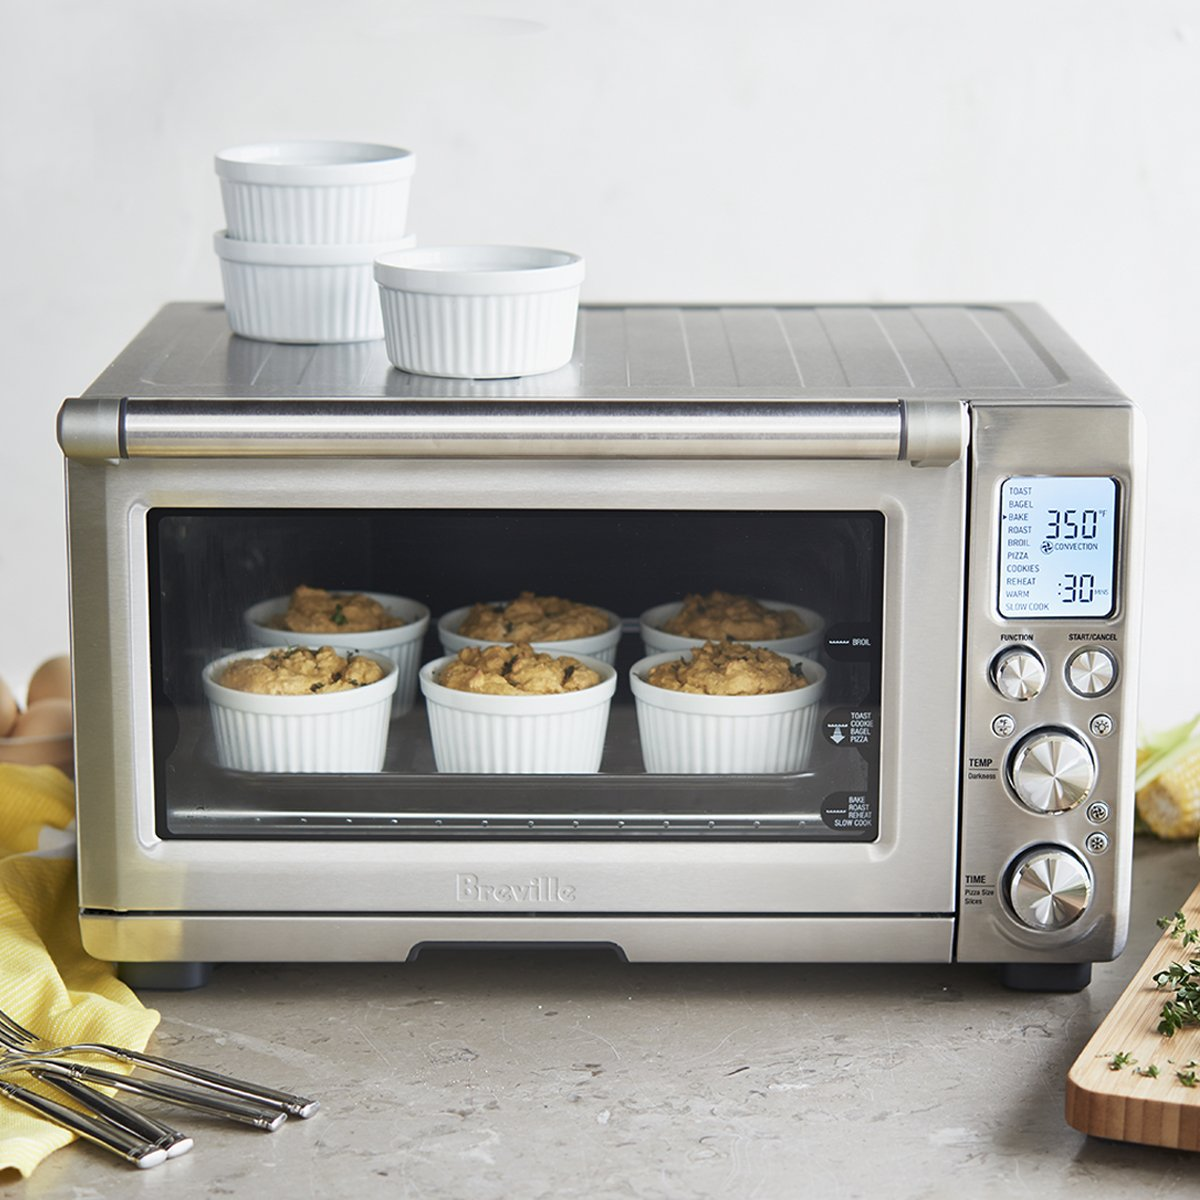 The @BrevilleUSA sale starts today. Put innovation on your countertop and save up to 50% off: https://t.co/UBiY0LeQpc https://t.co/EbmtbYAkU0